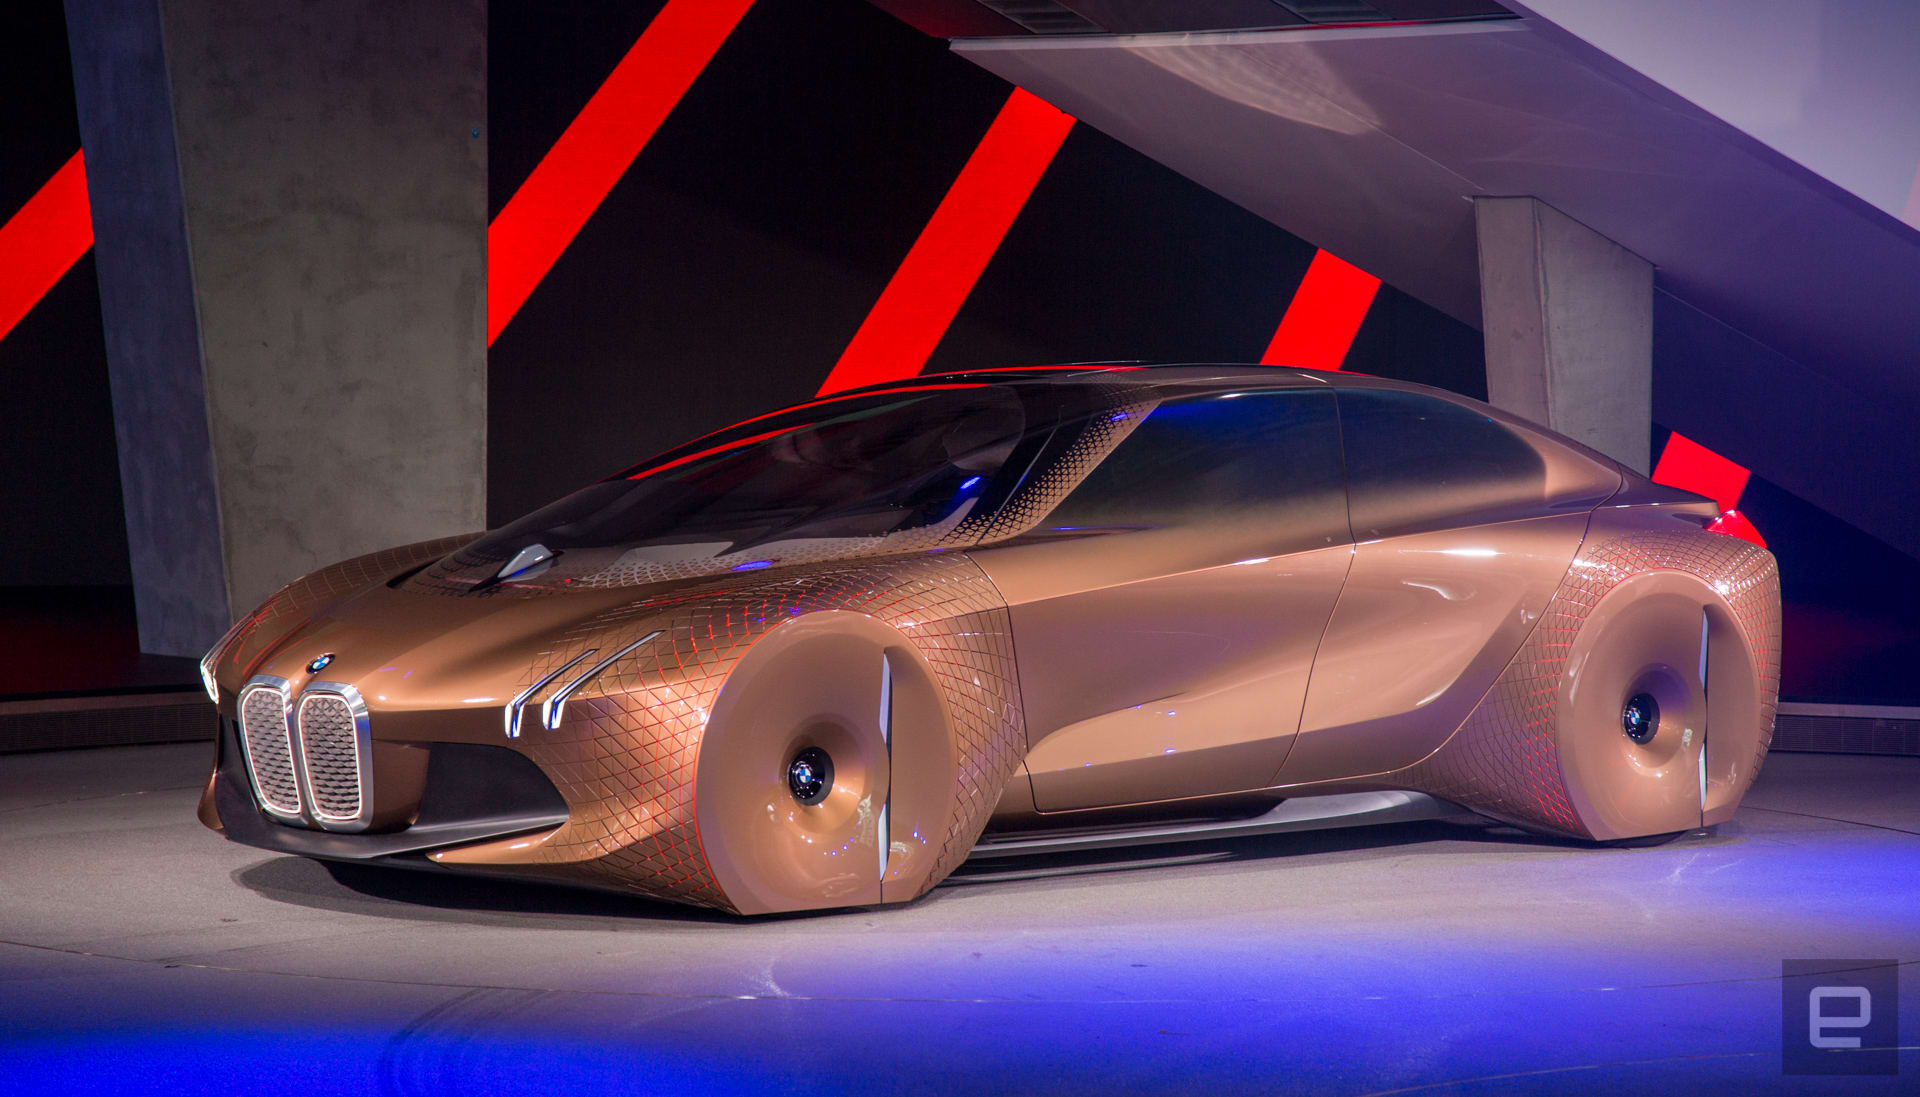 BMW will have 25 electrified cars on the road by 2023